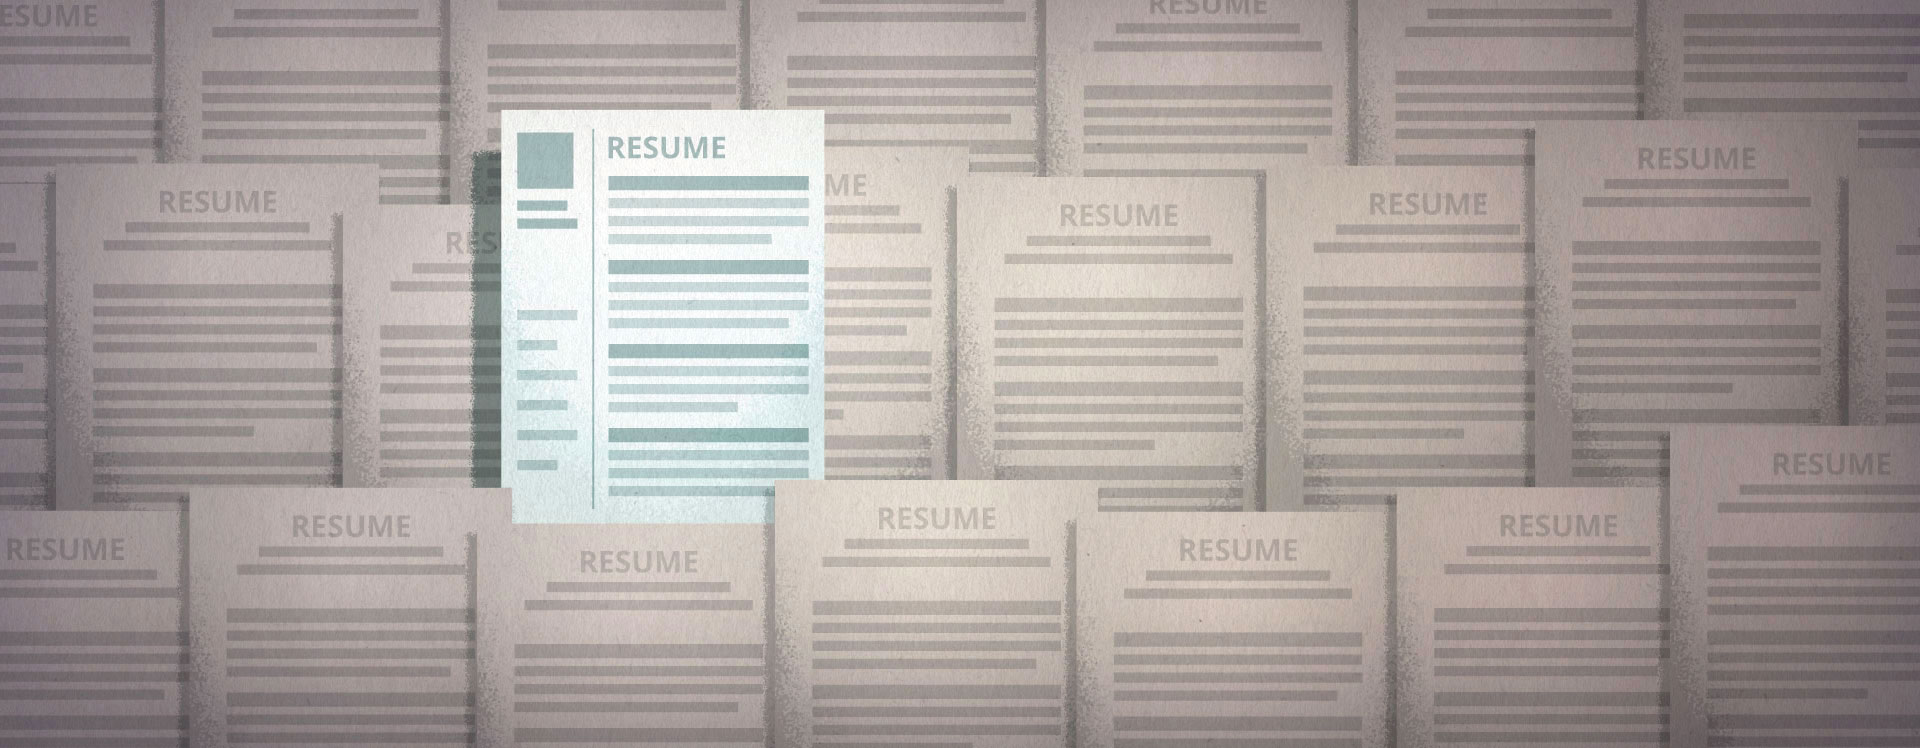 How To Write The Perfect Health Information Resume And Cover Letter